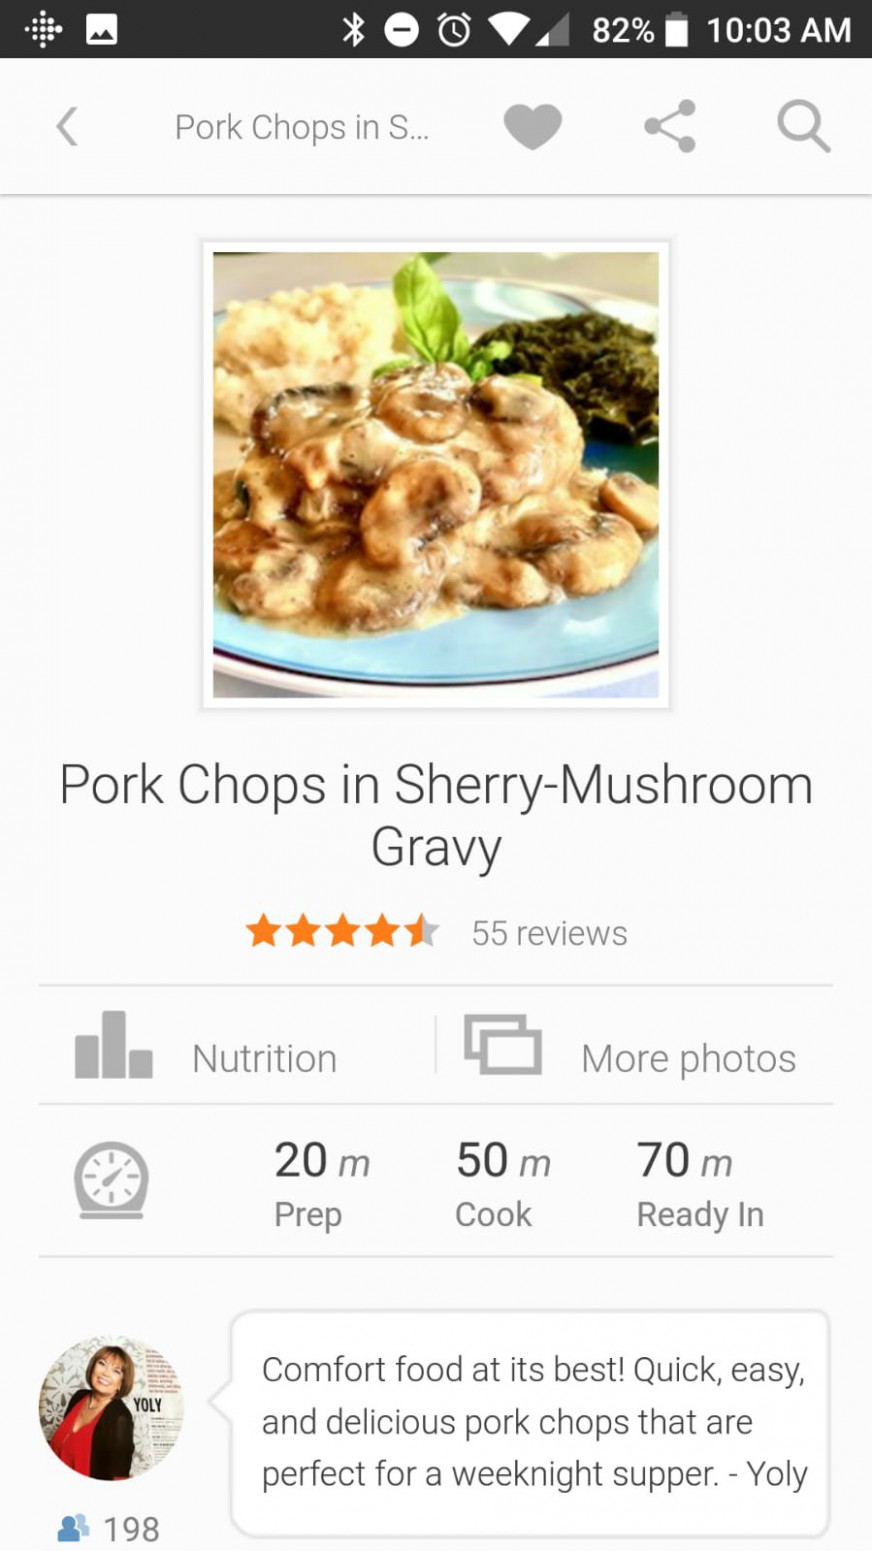 Allrecipes Dinner Spinner 13.13.13 - Download für Android APK ..